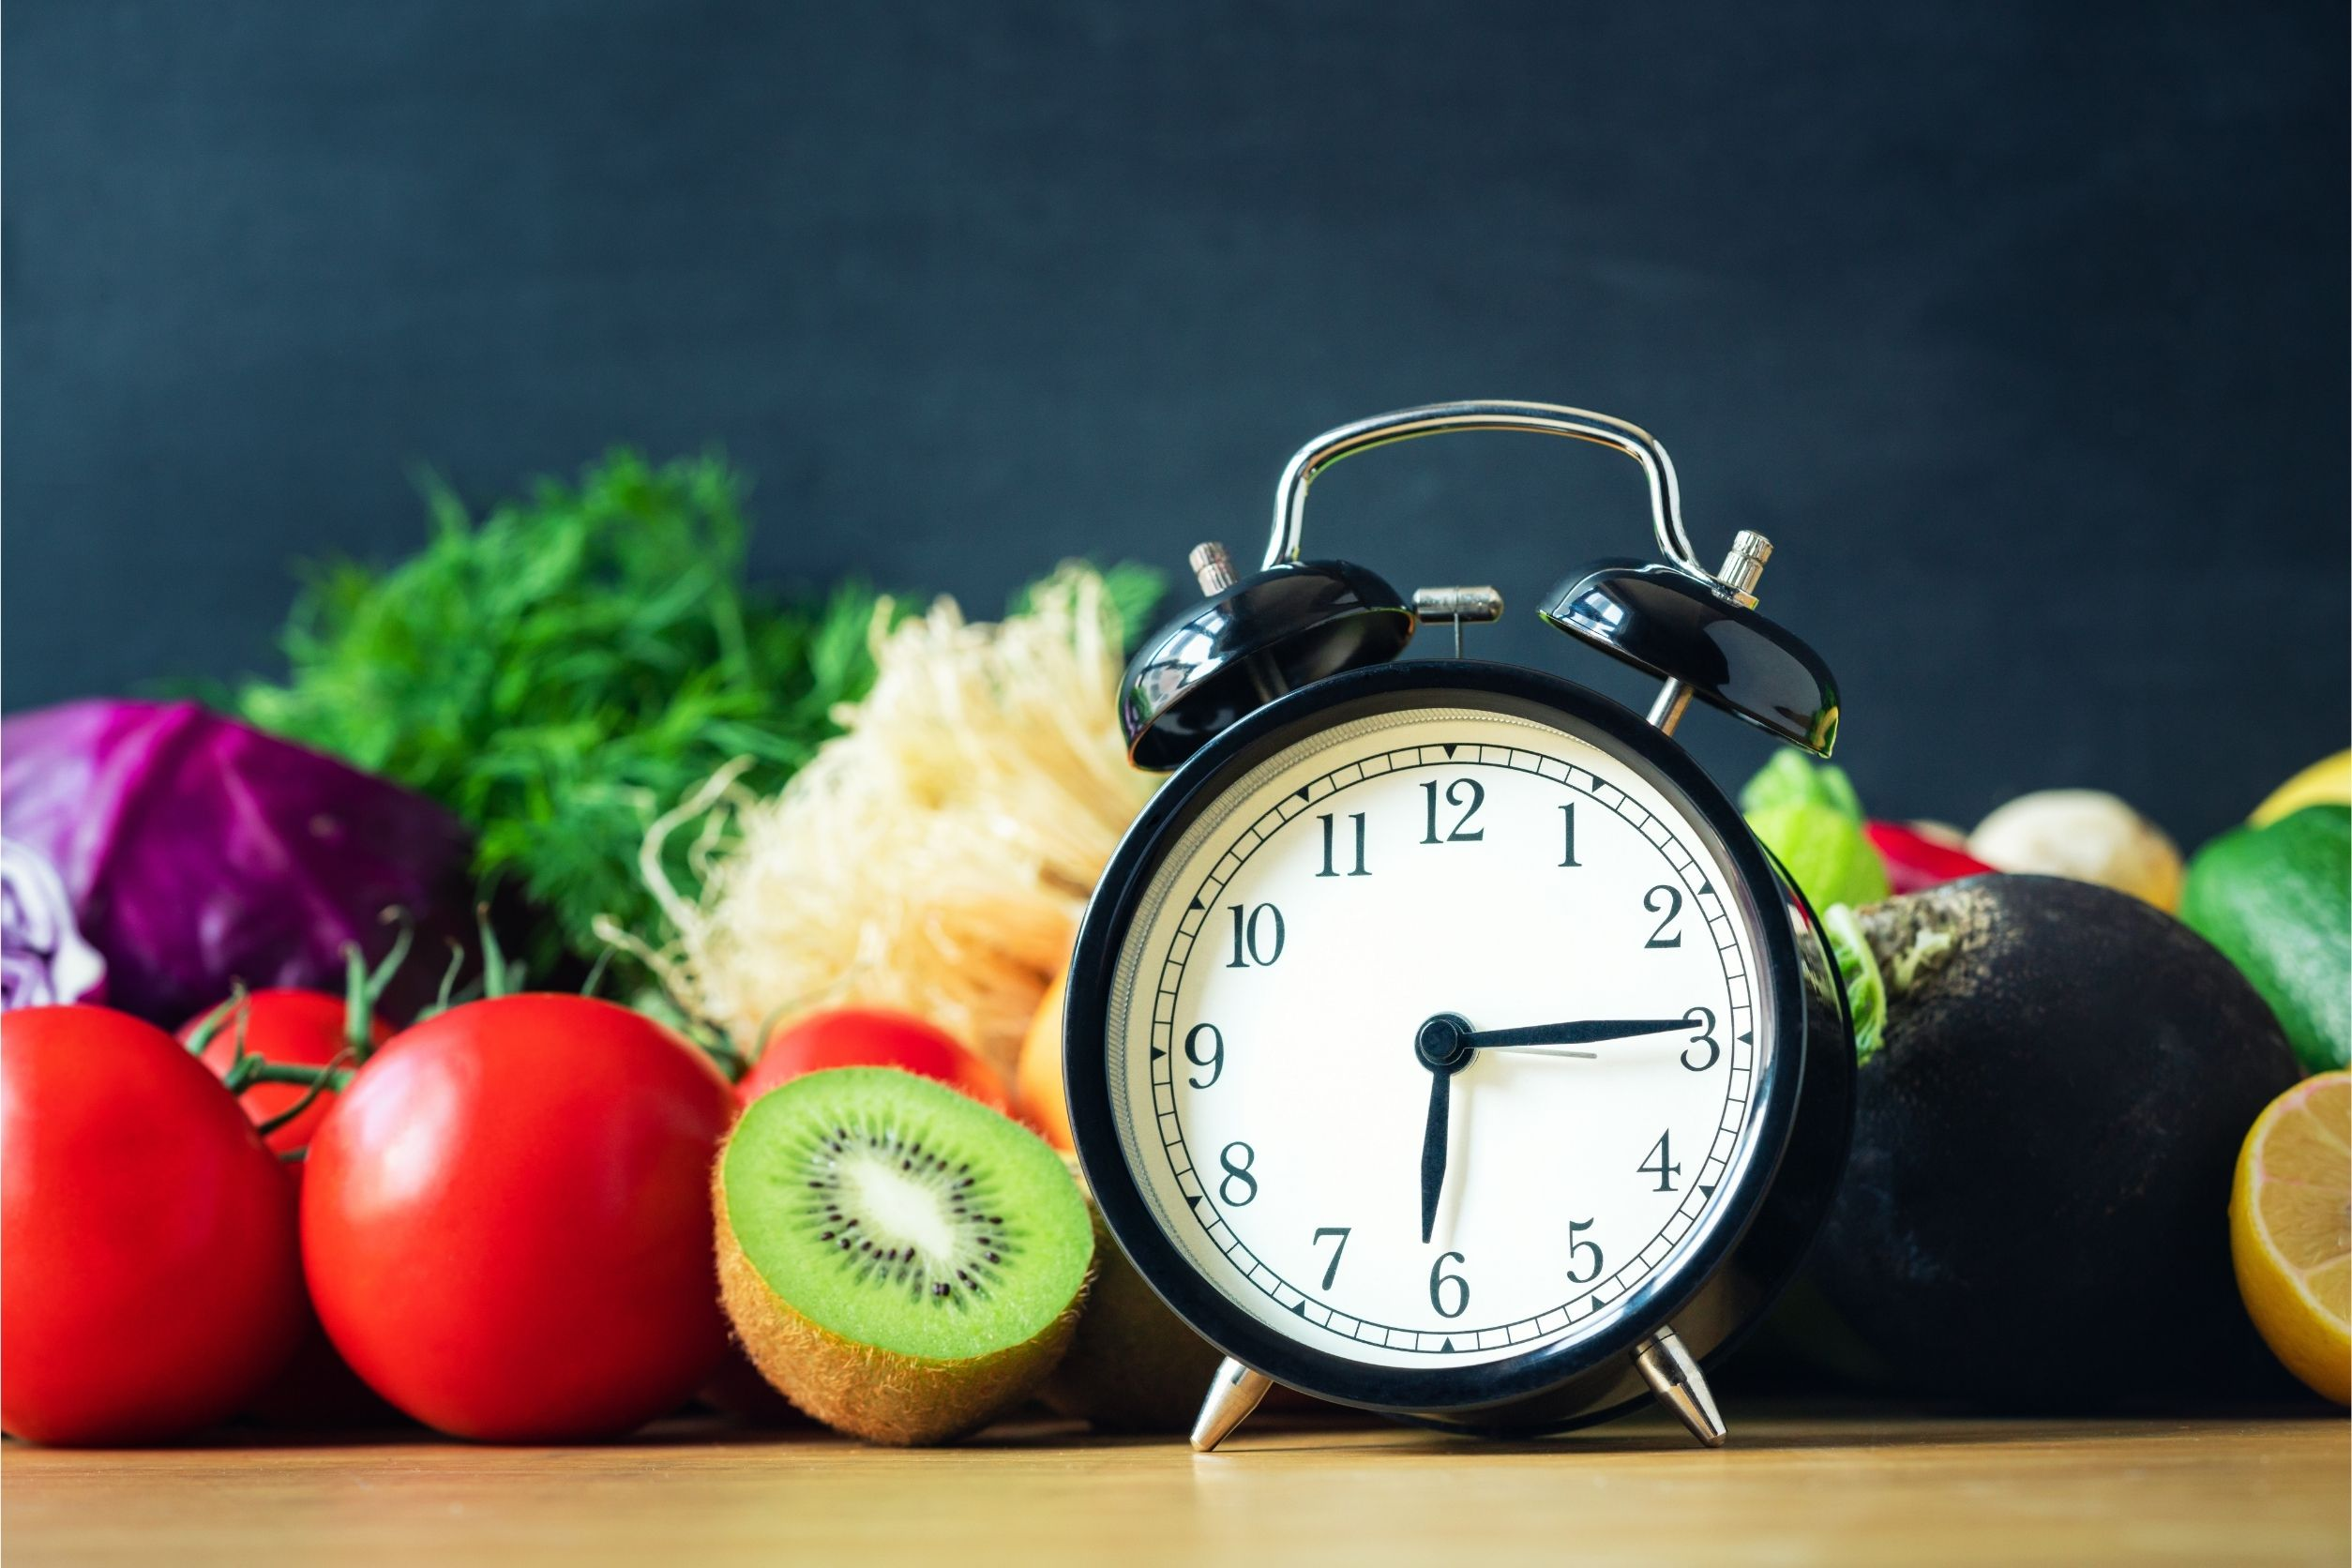 intermittent fasting concept image of clock with healthy foods